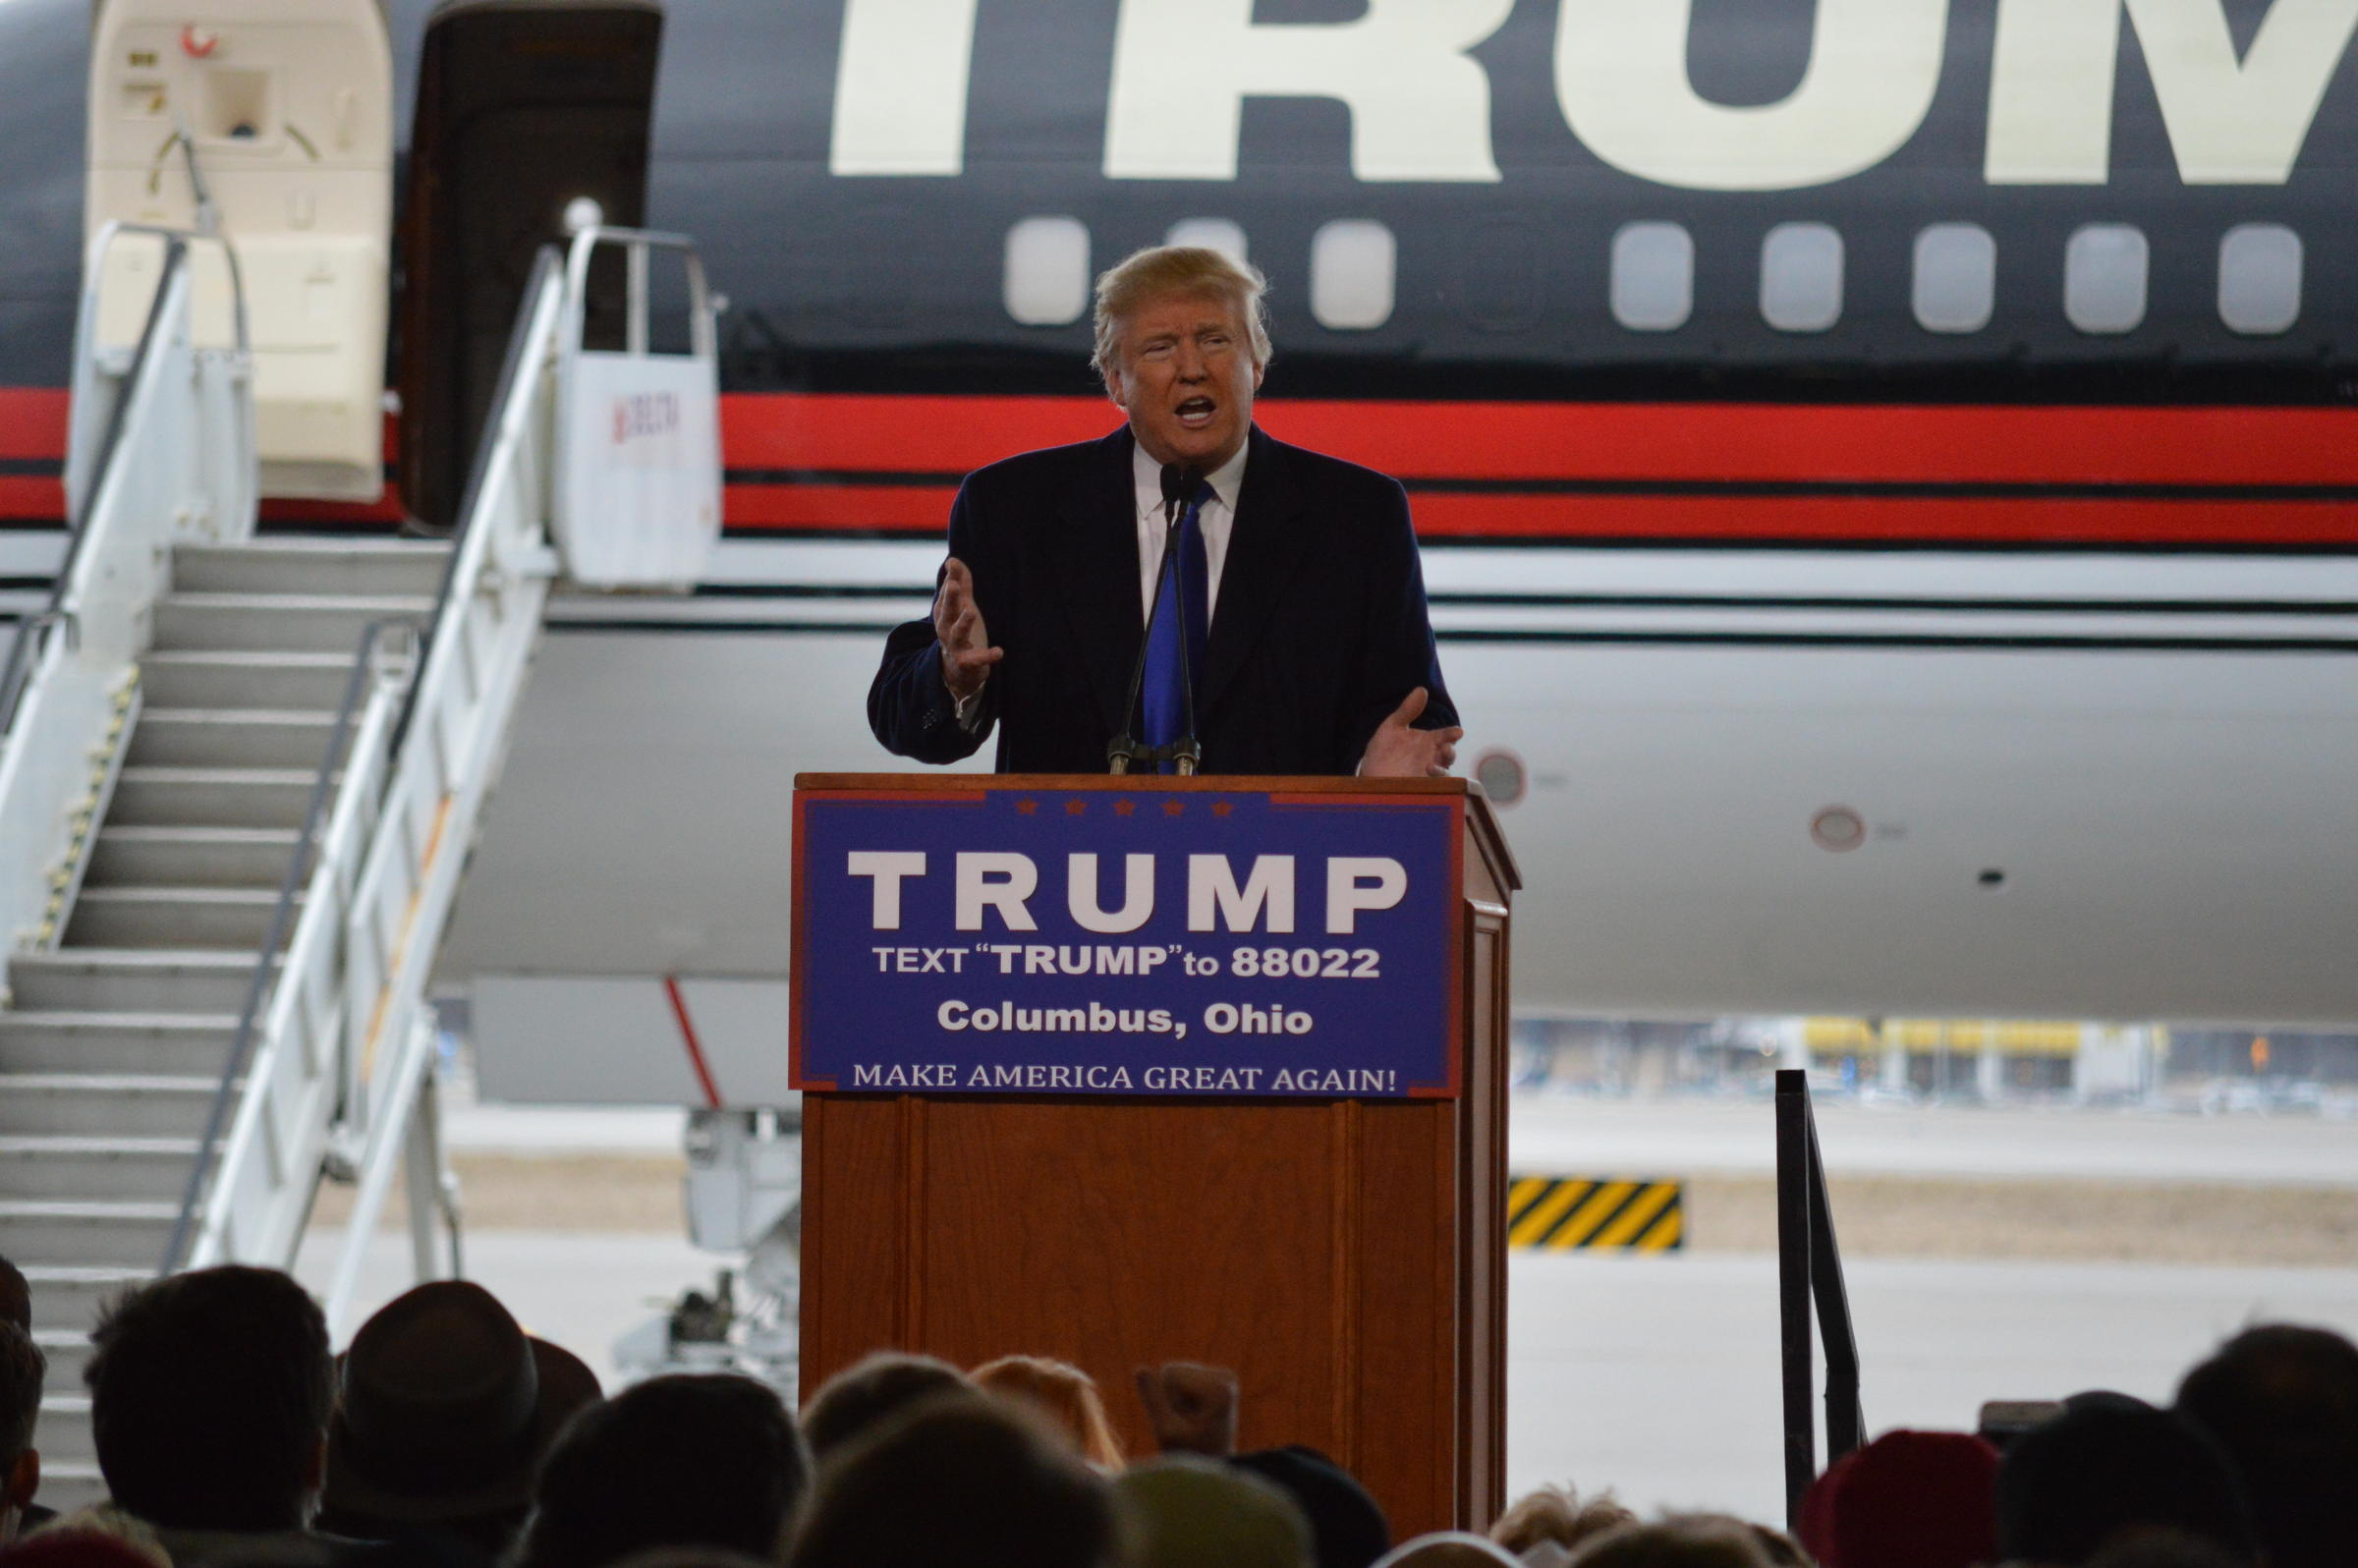 At Ohio rally, Trump takes another victory lap